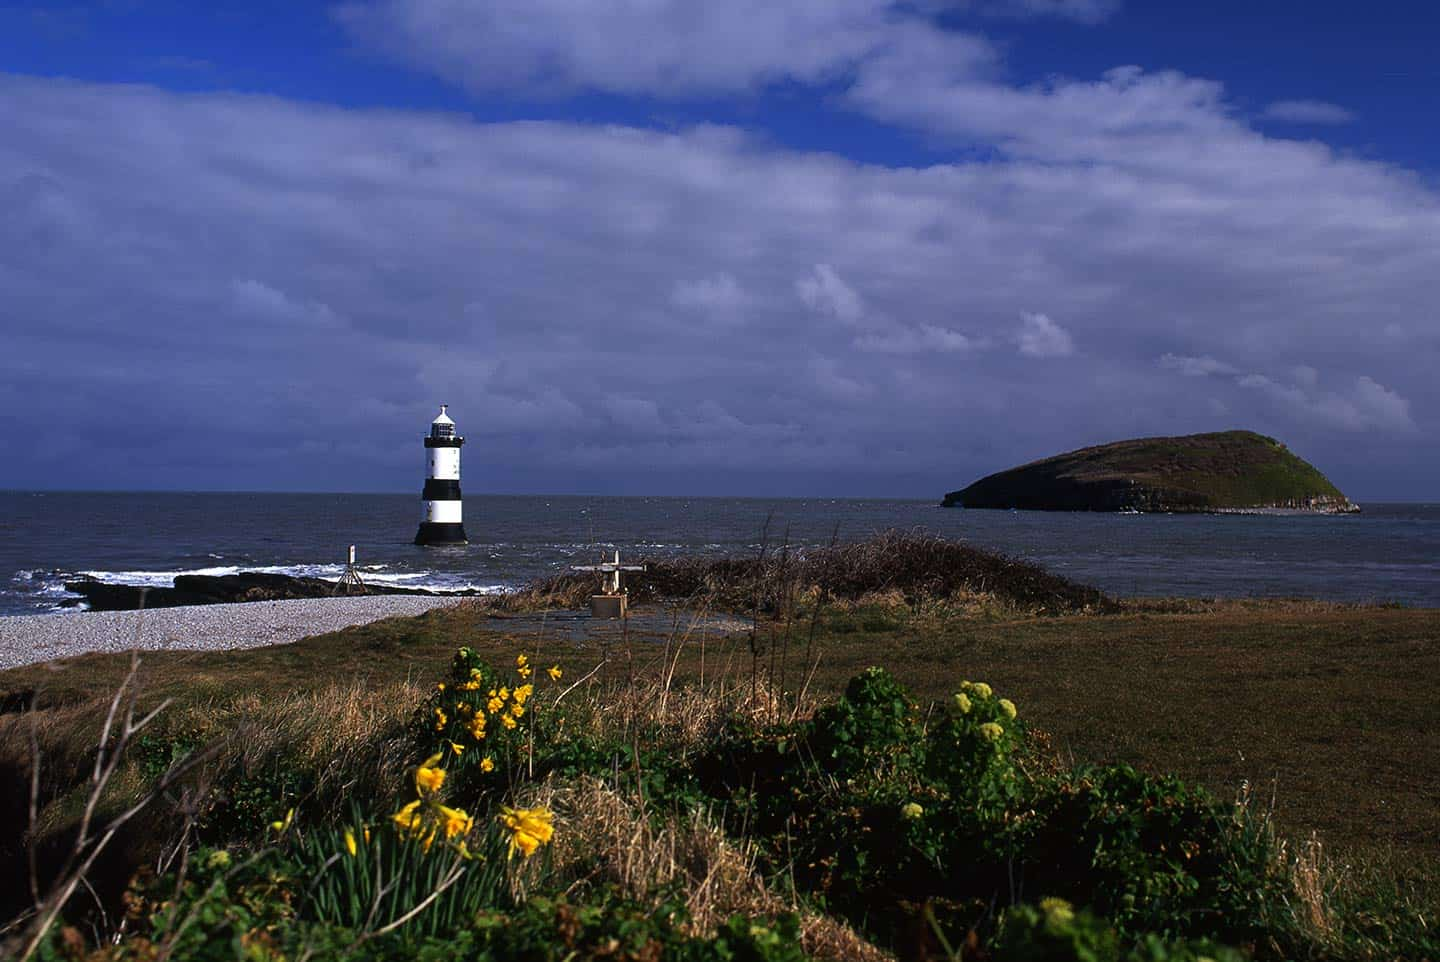 Image of Puffin Island, Anglesey